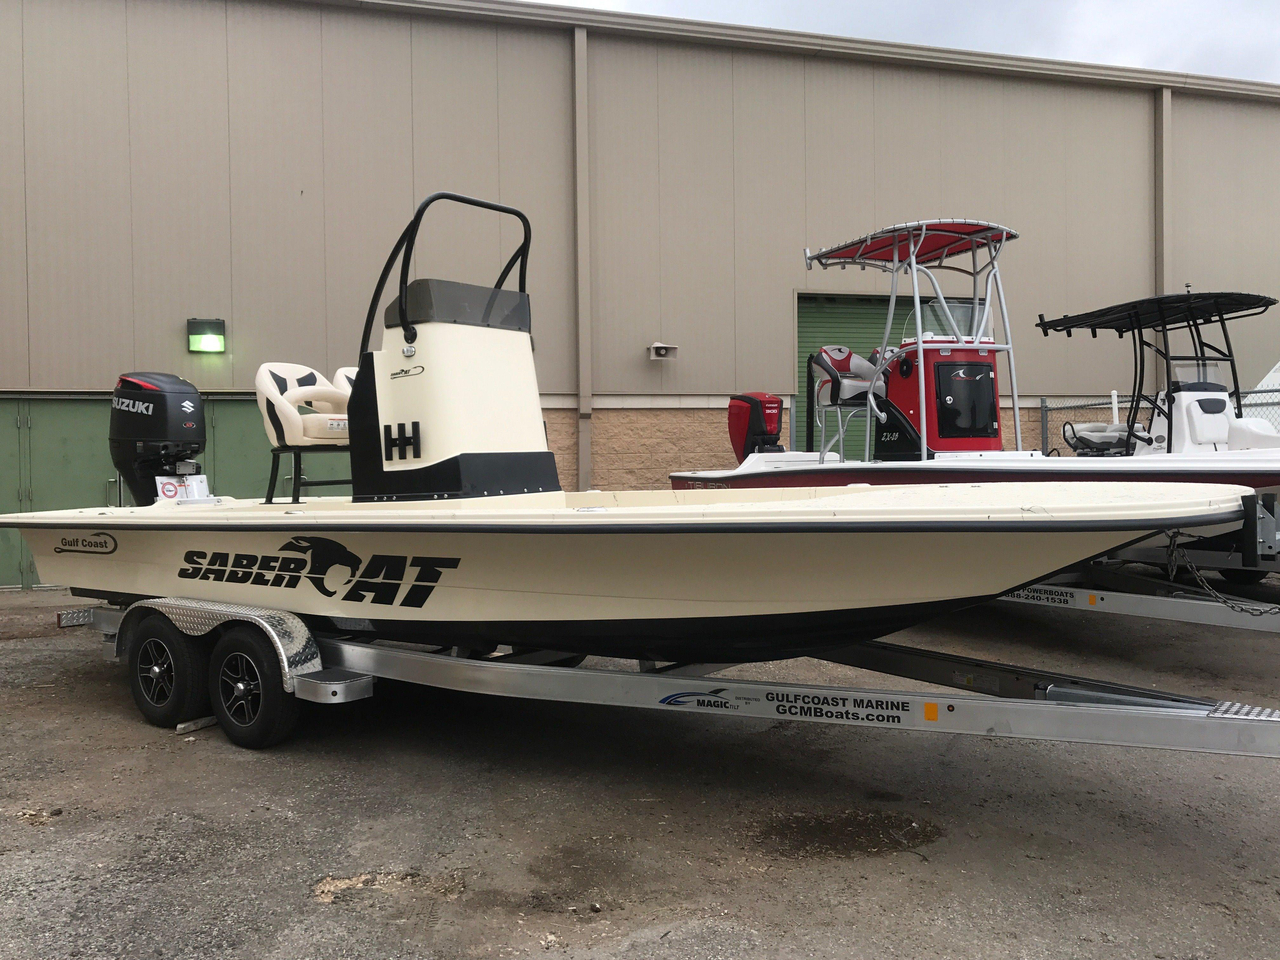 2017 New Gulf Coast Saber Cat Bay Boat For Sale Corpus